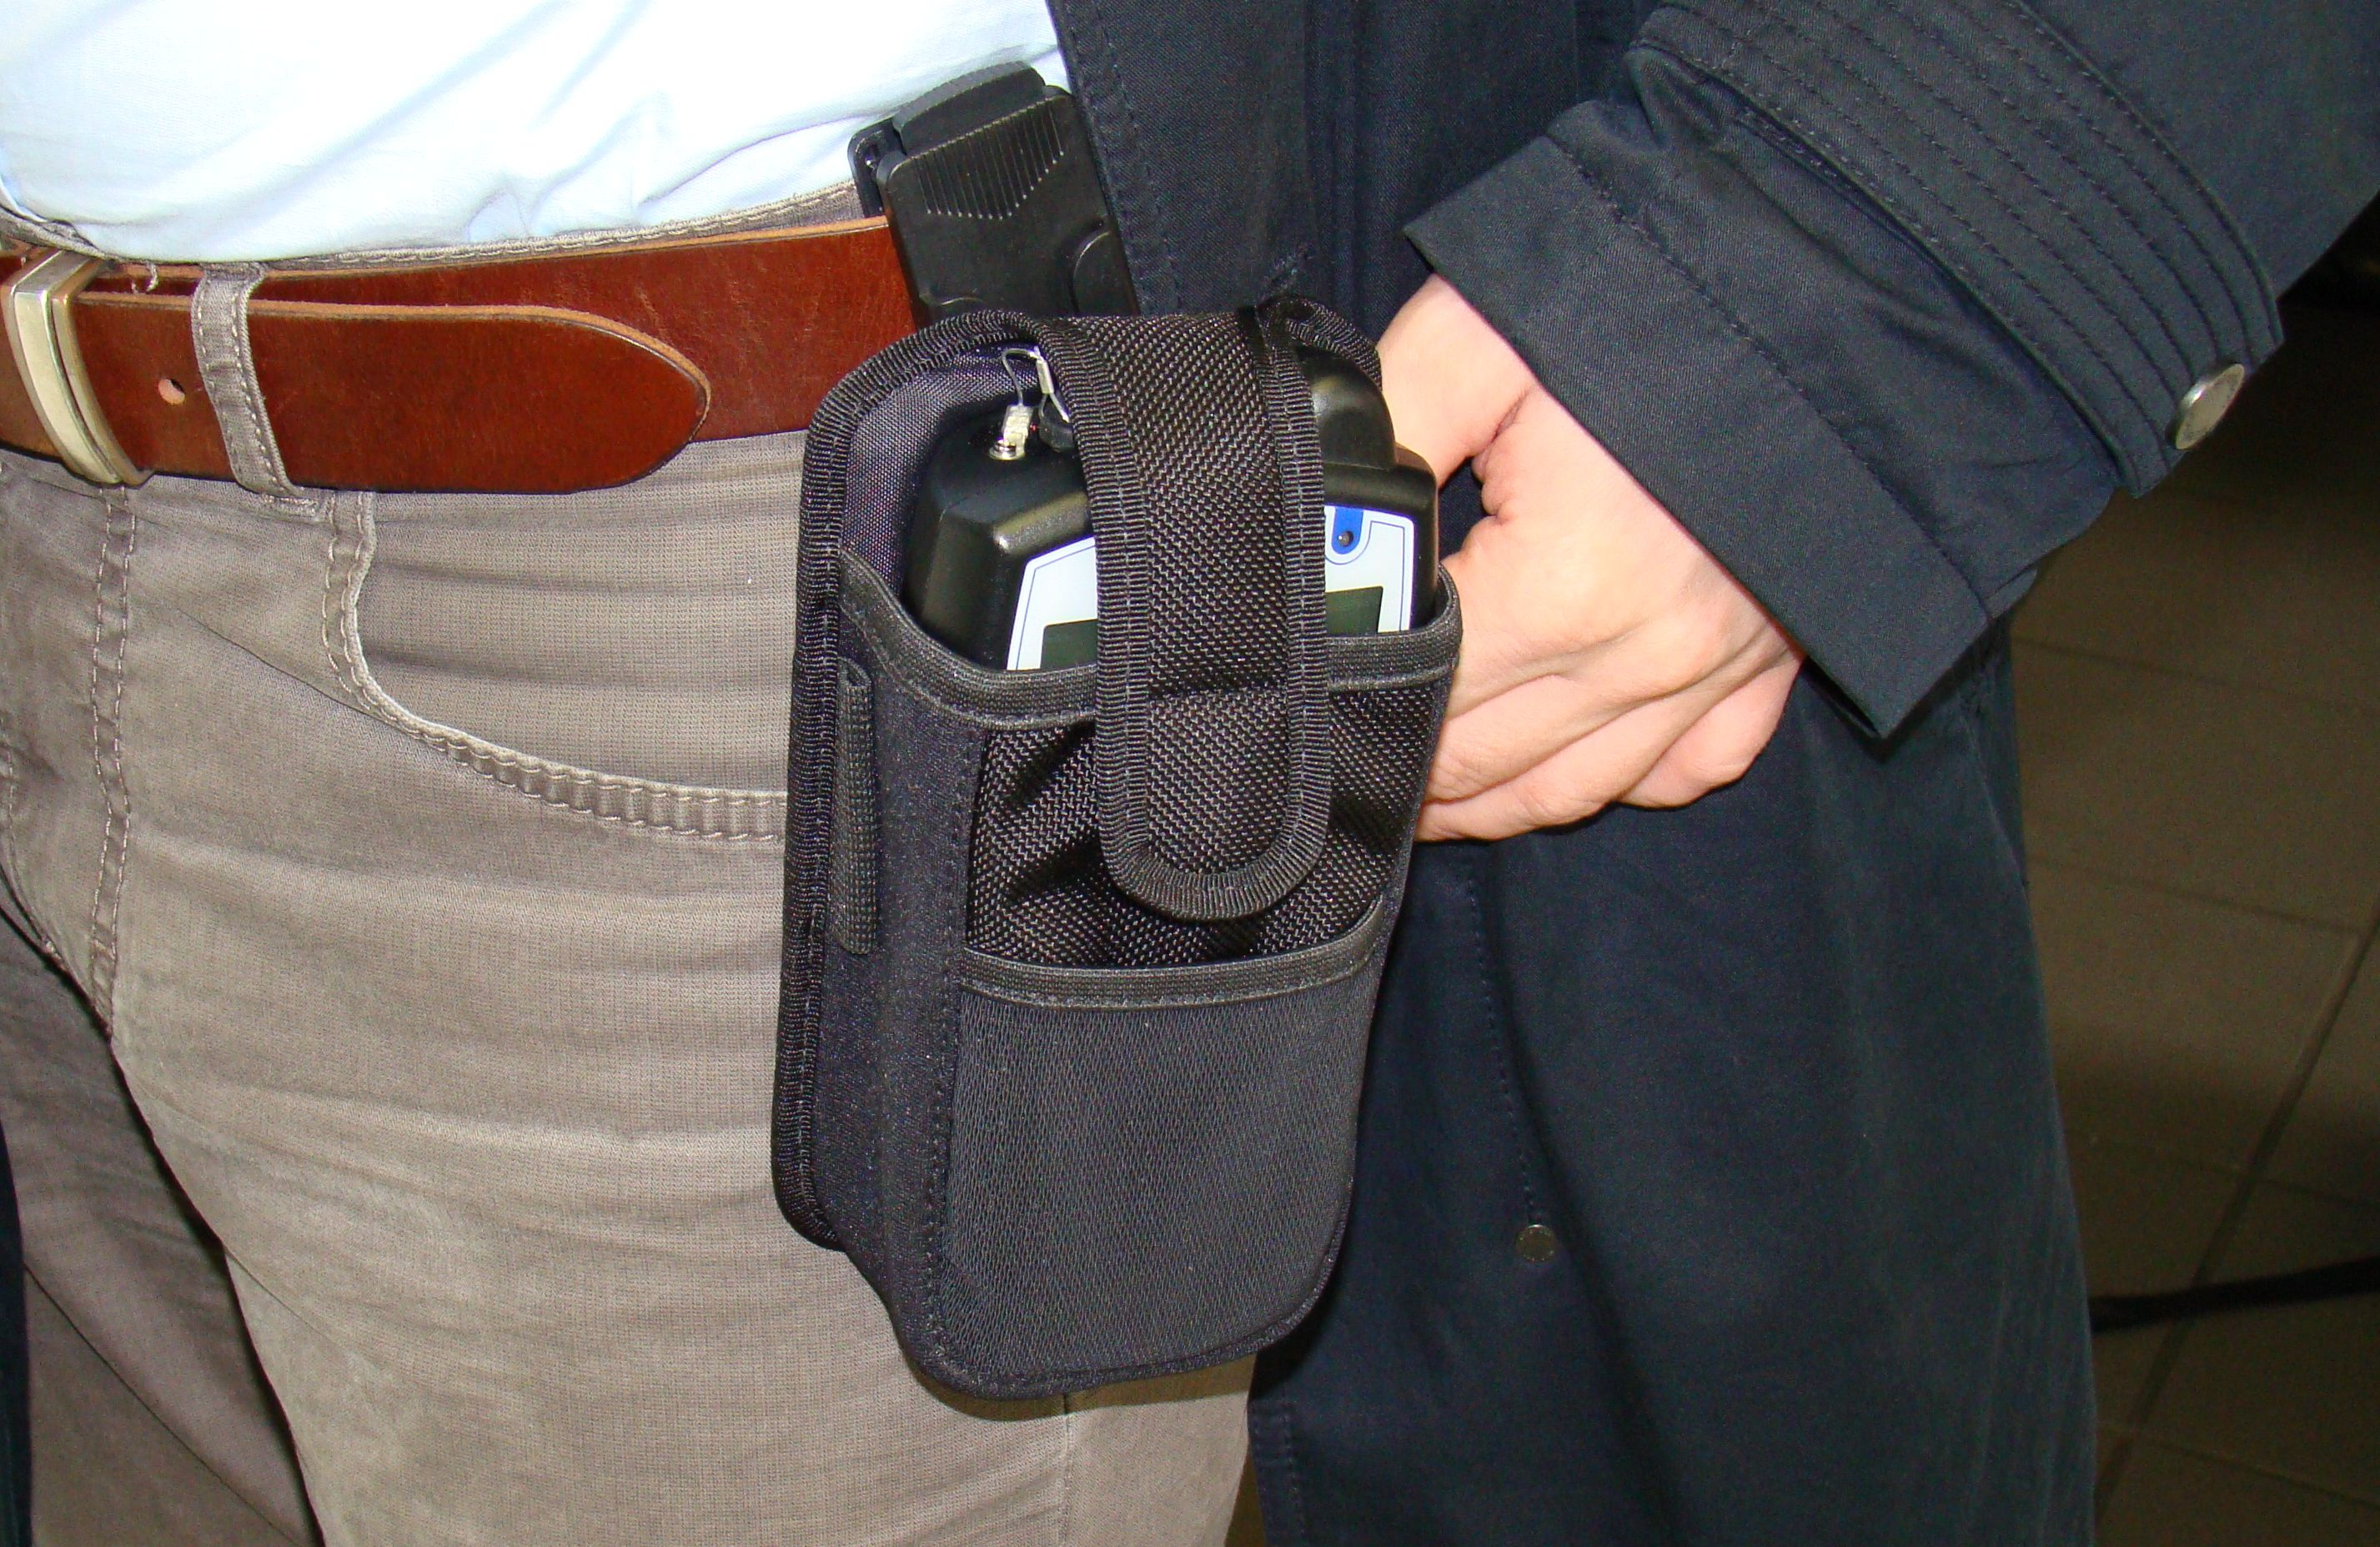 New belt holster for APR500